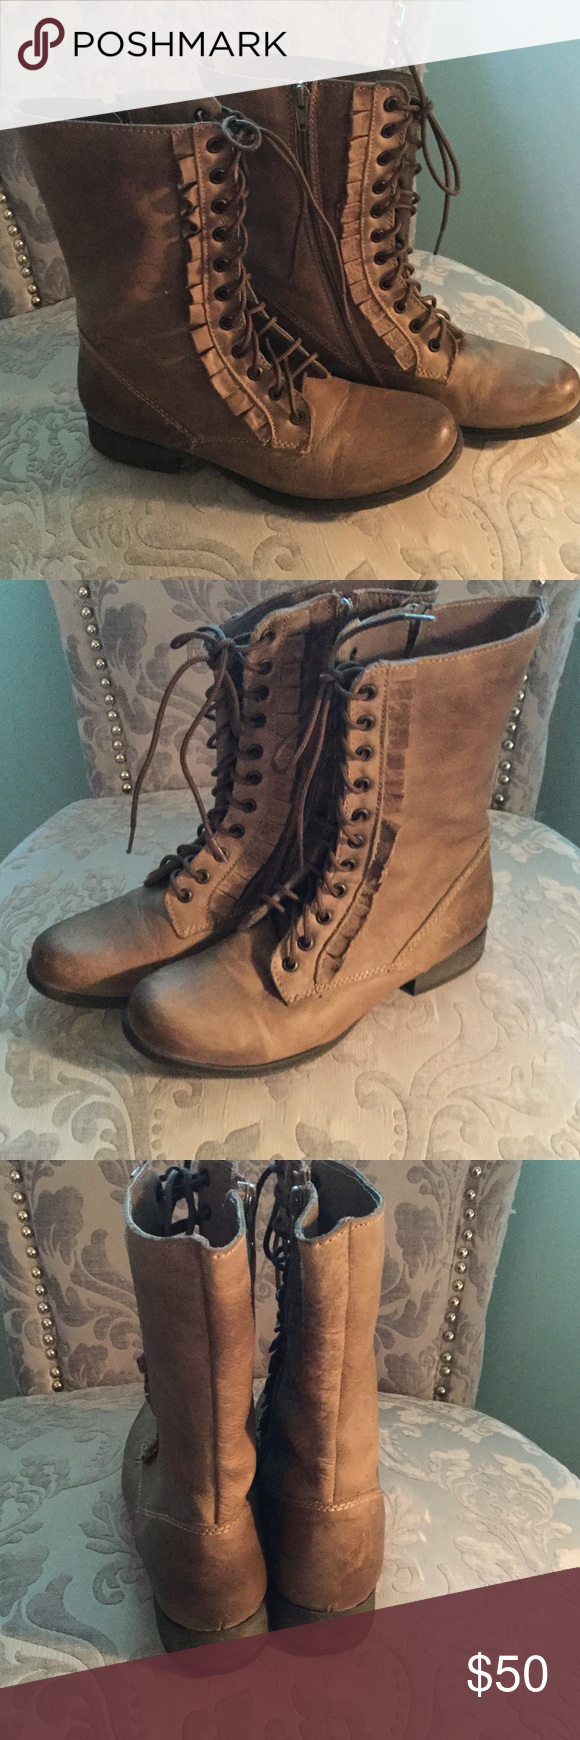 Betsey Johnson boots worn once, Brown boots with laces. Inside leg zippers. Hot pink satin lining. Nearly new. Betsey Johnson Shoes Combat & Moto Boots